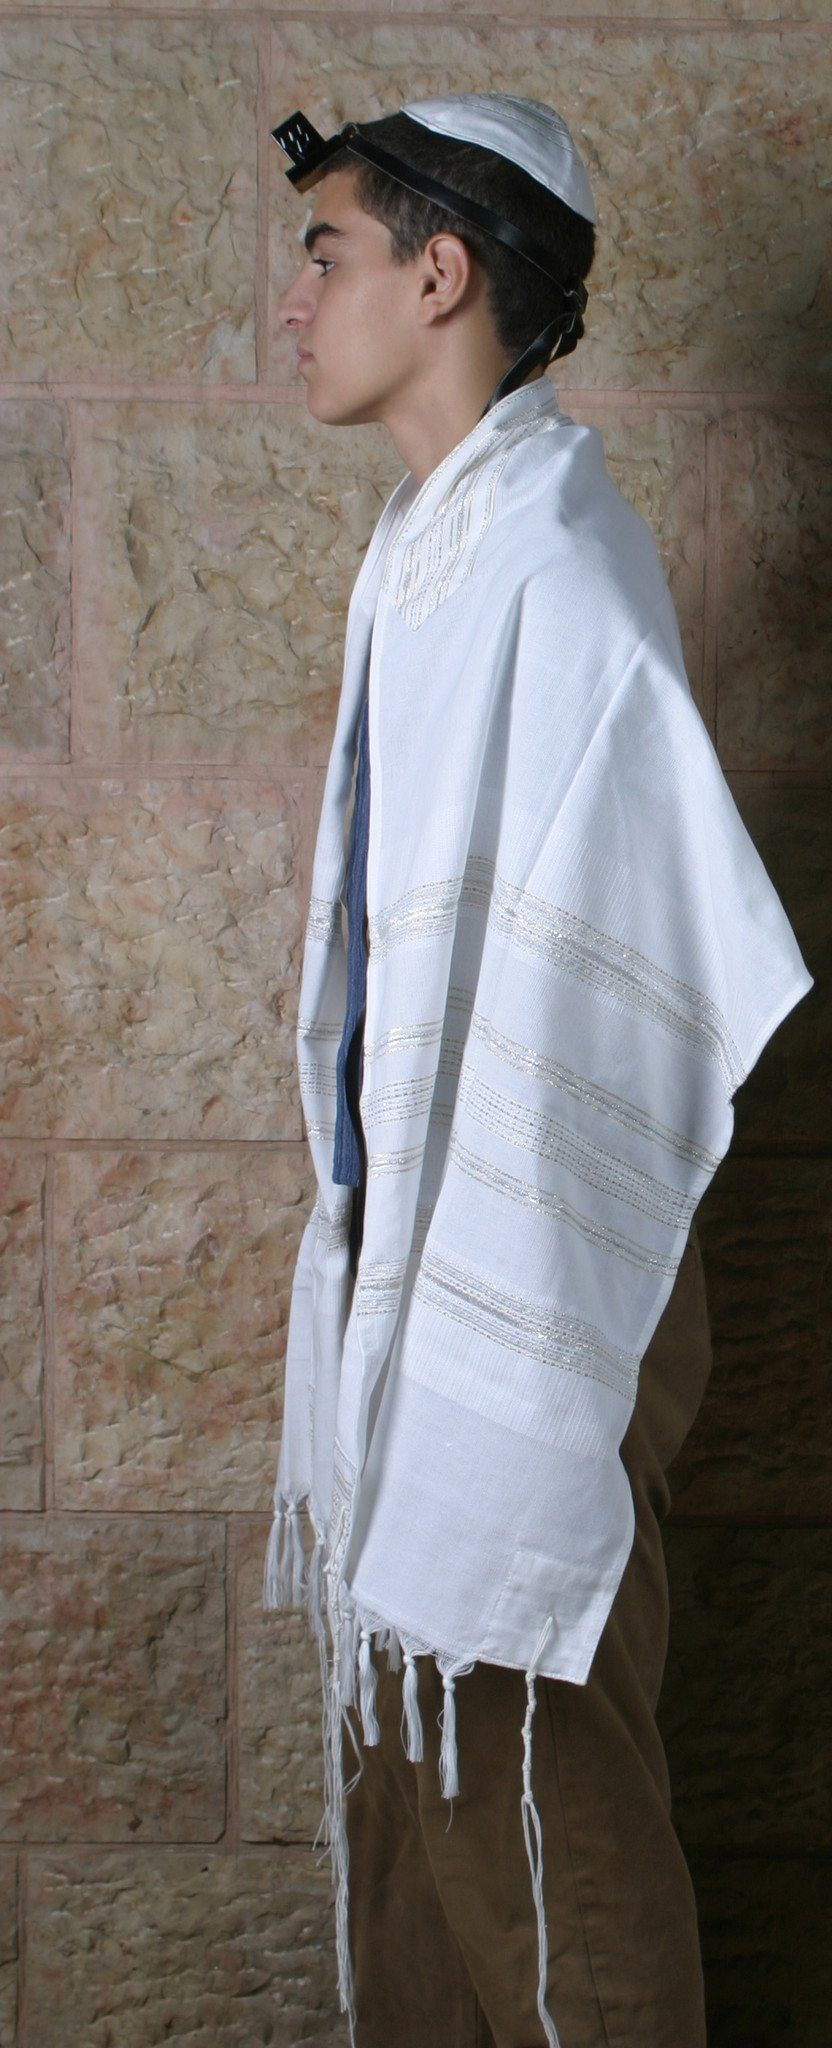 Cotton Tallit - Gold and White Gabrieli Cotton Tallit